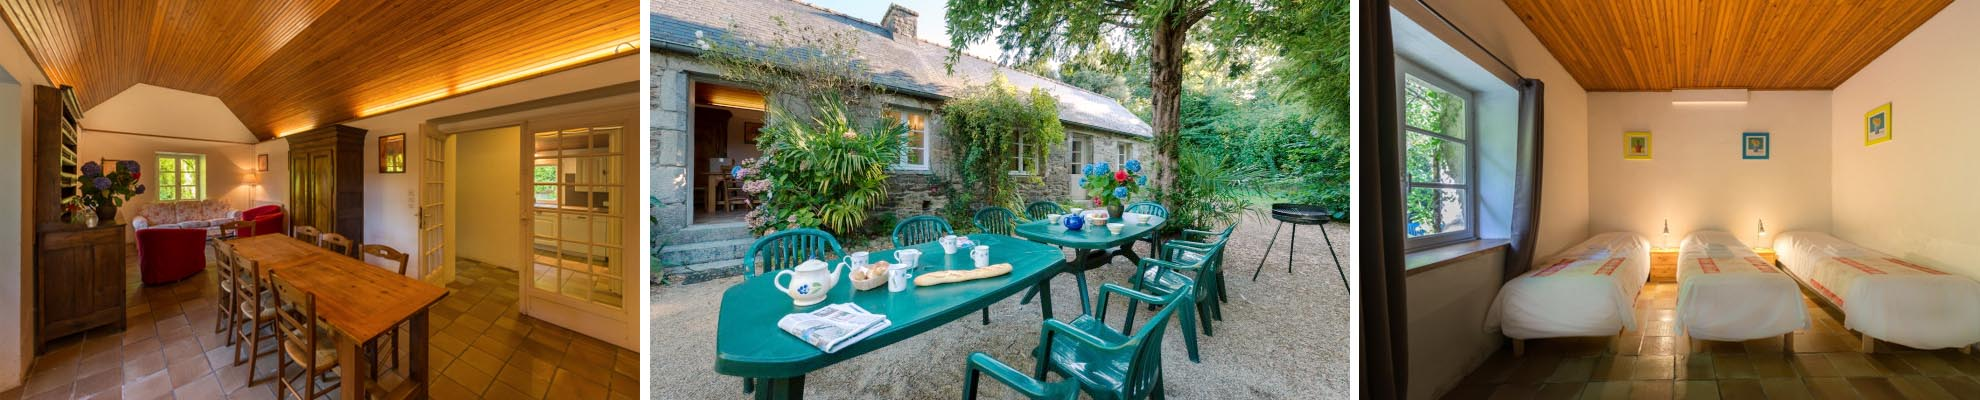 camping-lanniron-maison-canal